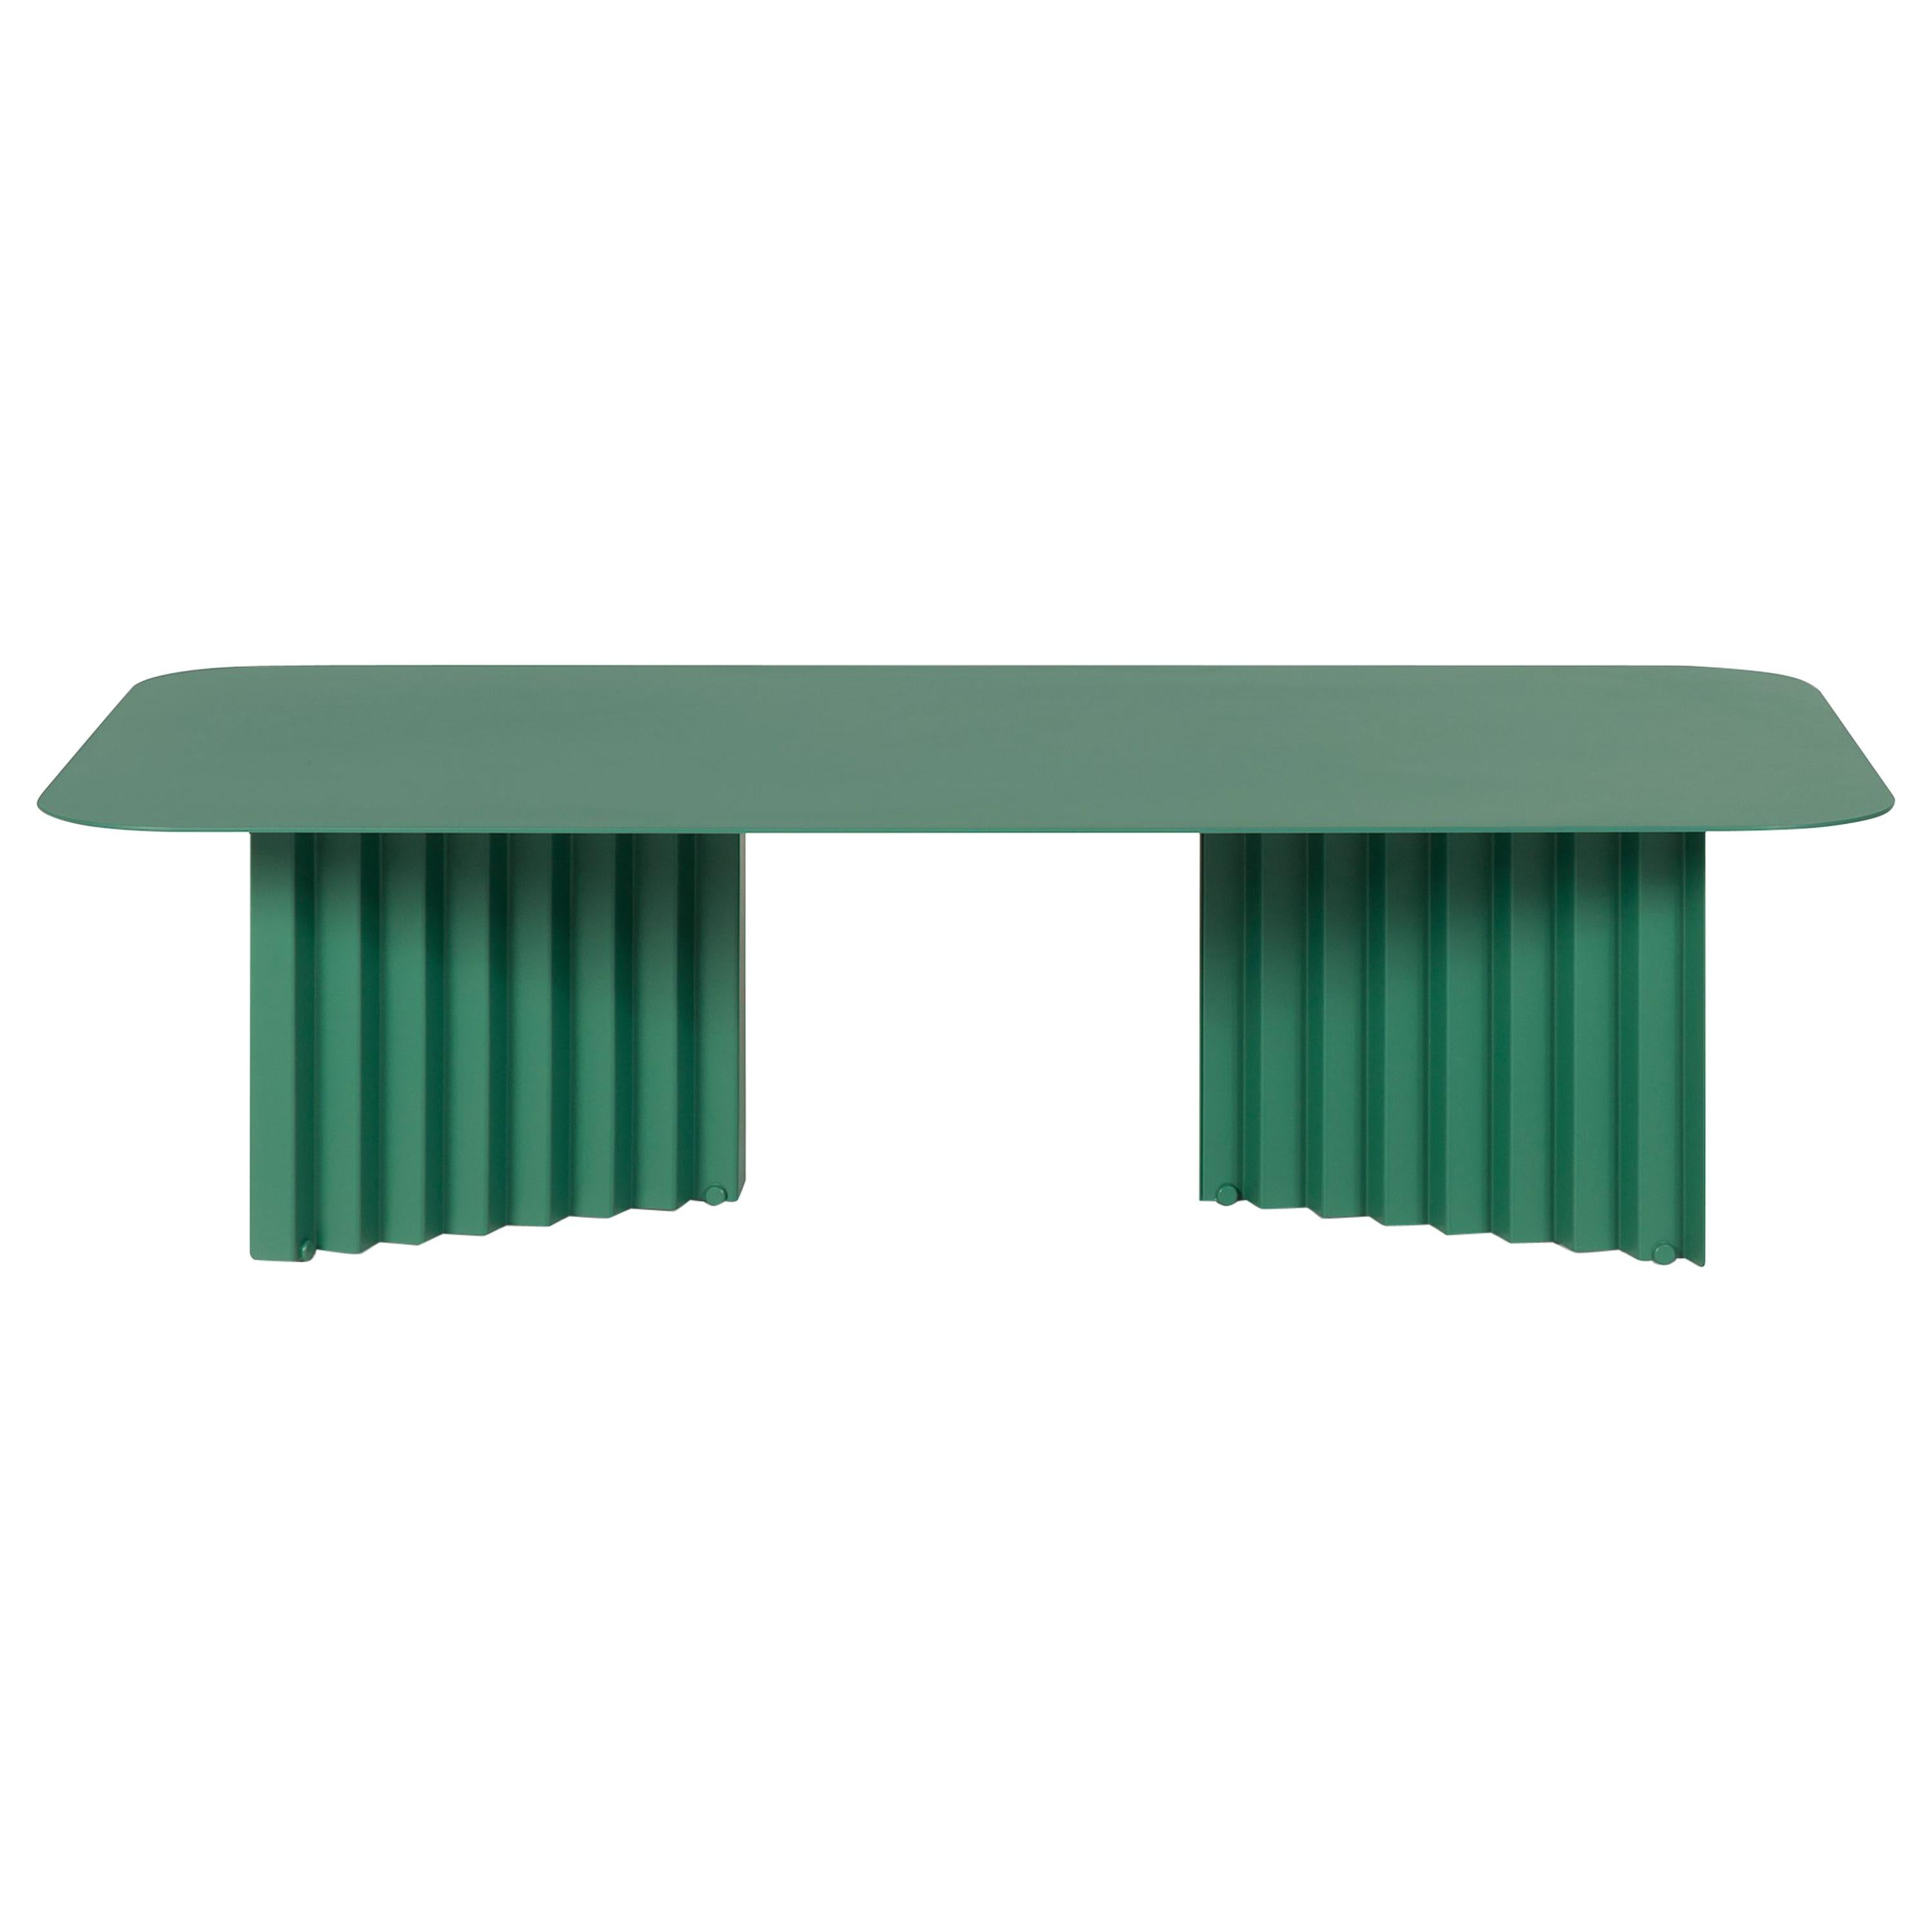 RS Barcelona Plec Large Table in Green Metal by A.P.O.